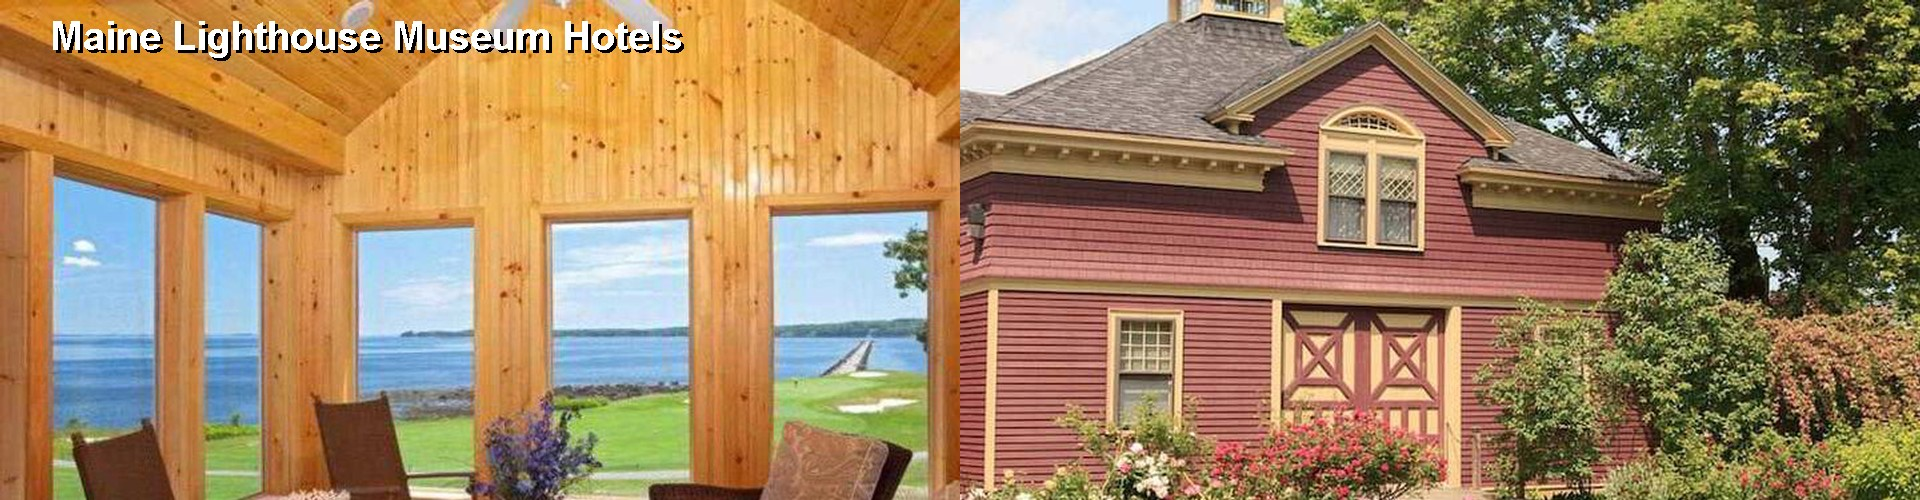 5 Best Hotels near Maine Lighthouse Museum